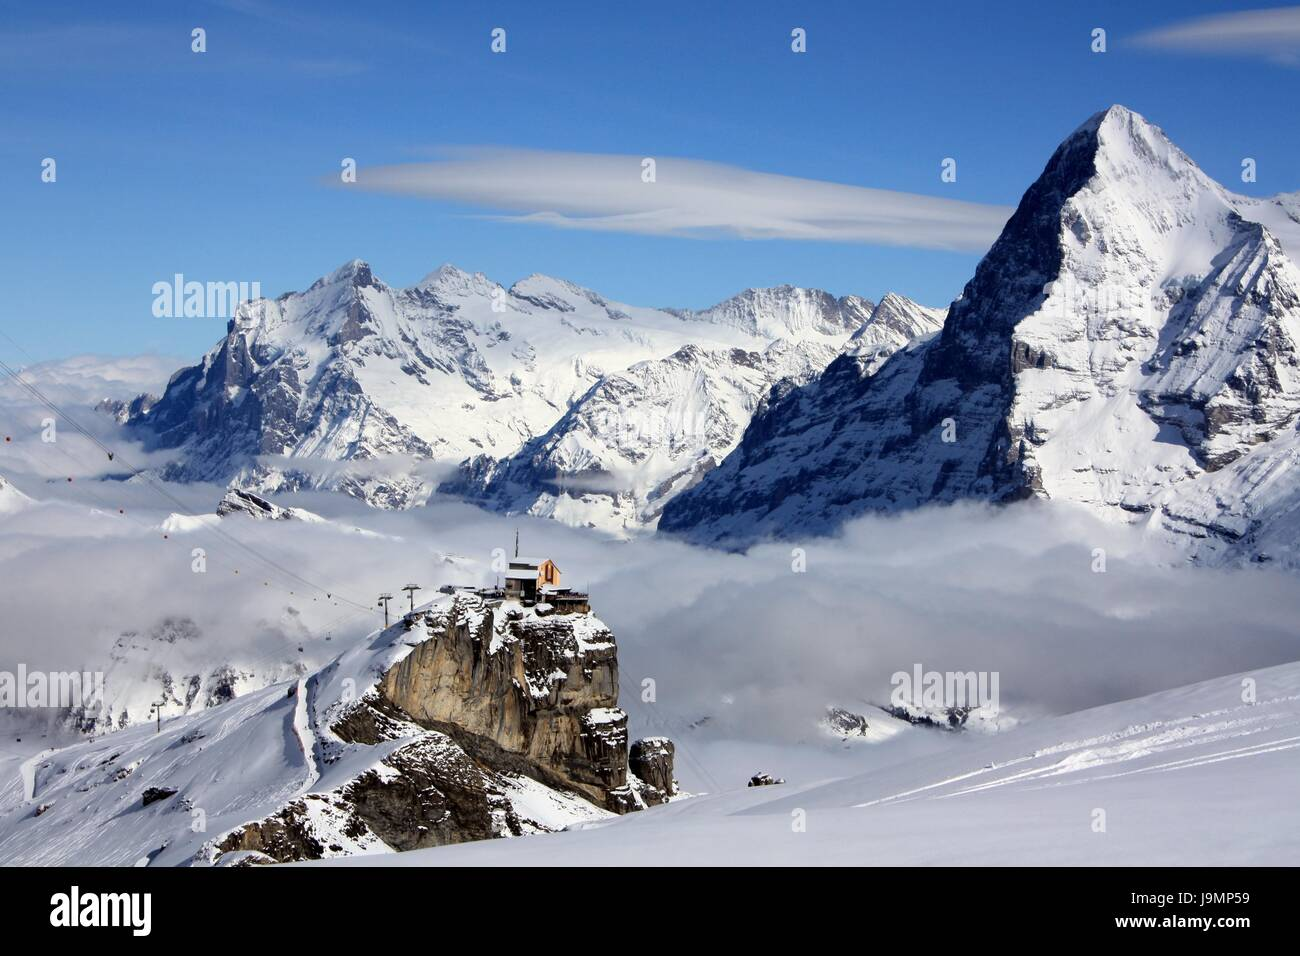 alpen schweiz schnee berge jungfrau berge urlaub urlaub stockfoto bild 143671285 alamy. Black Bedroom Furniture Sets. Home Design Ideas